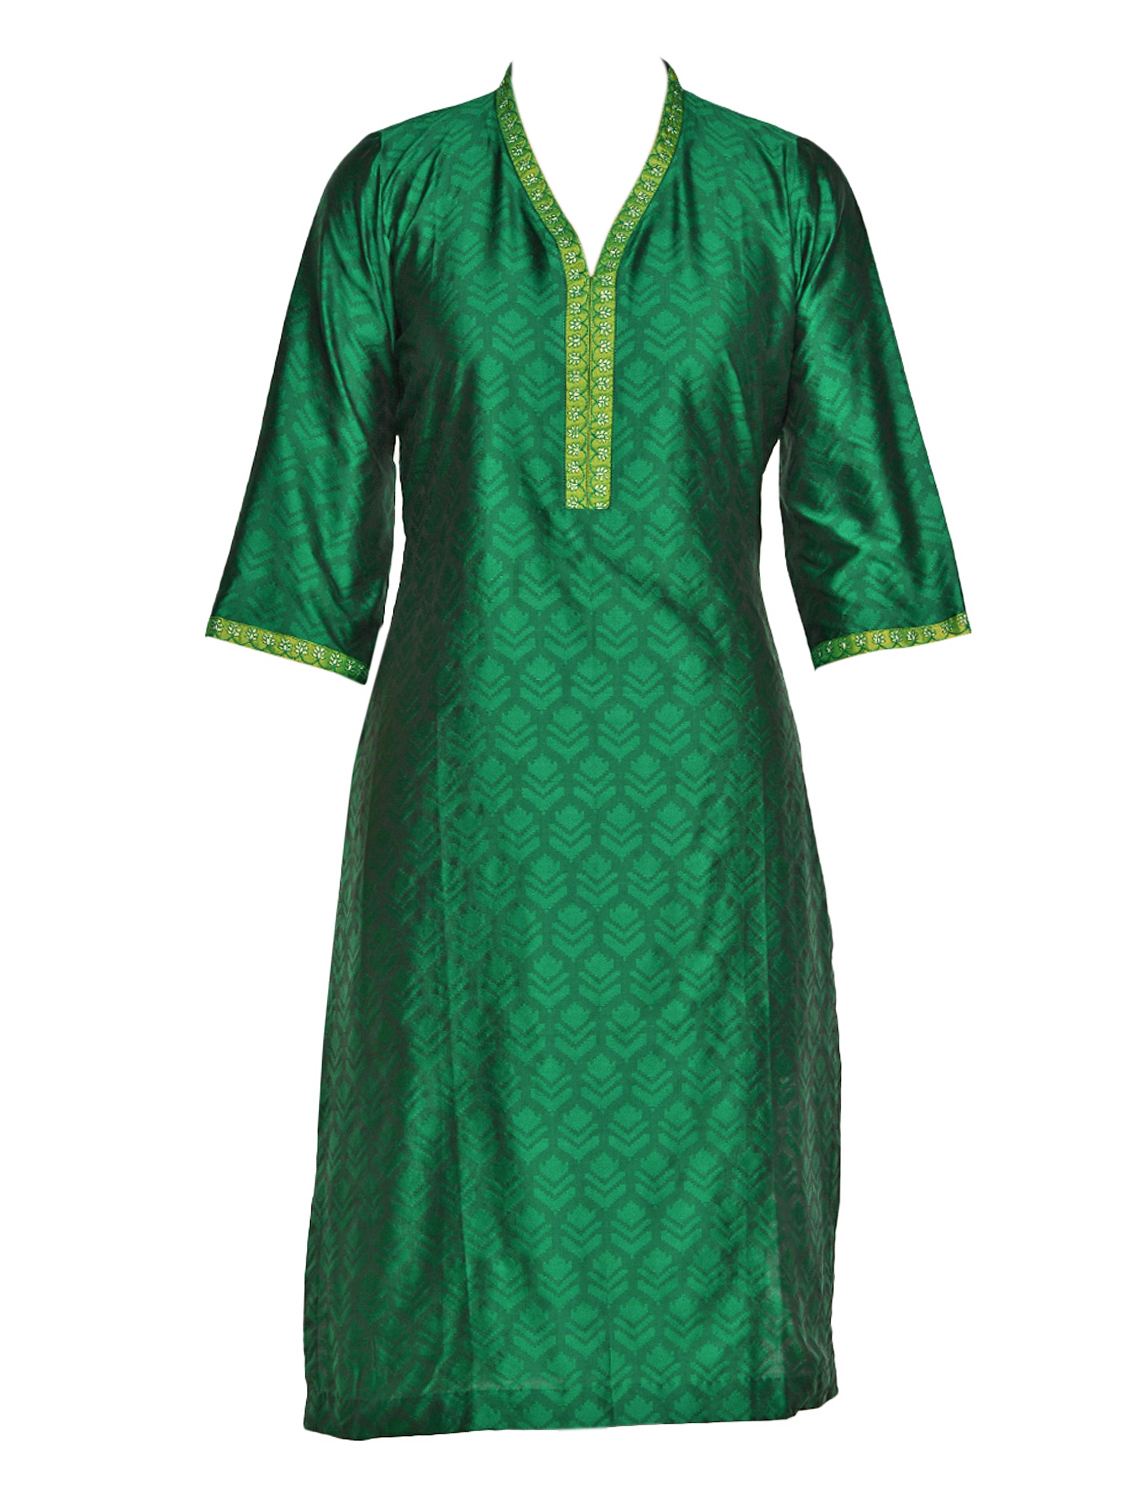 Silk kurta Rs 3600 on Limeroad.com